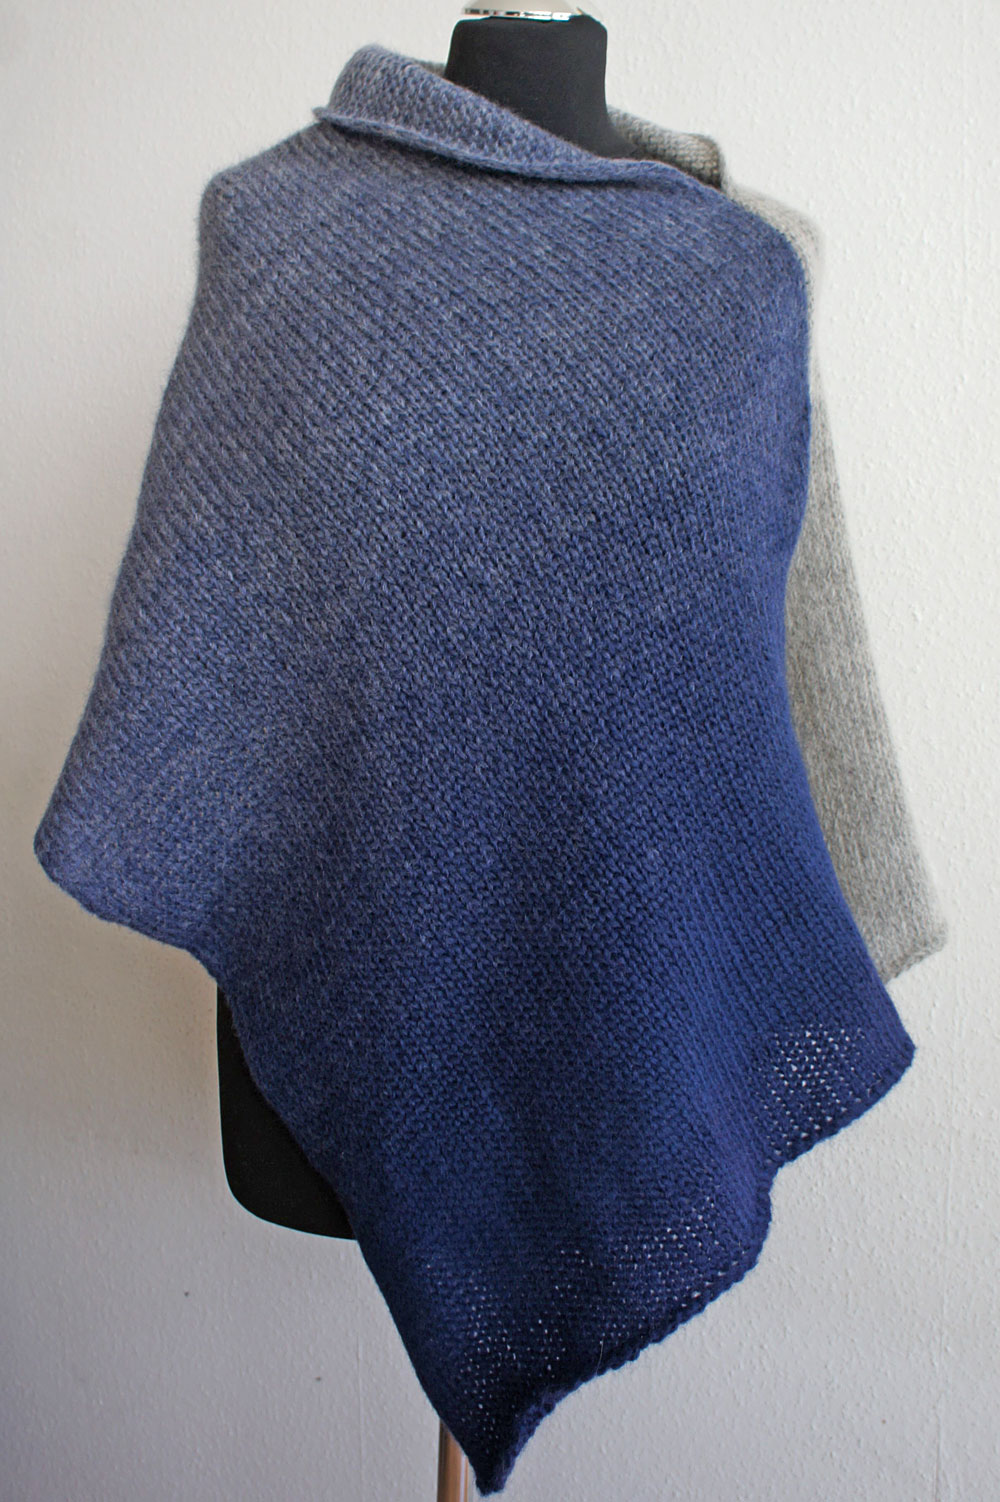 Poncho stricken - Studio Yarn poncho stricken Trendigen Poncho stricken – Anleitung